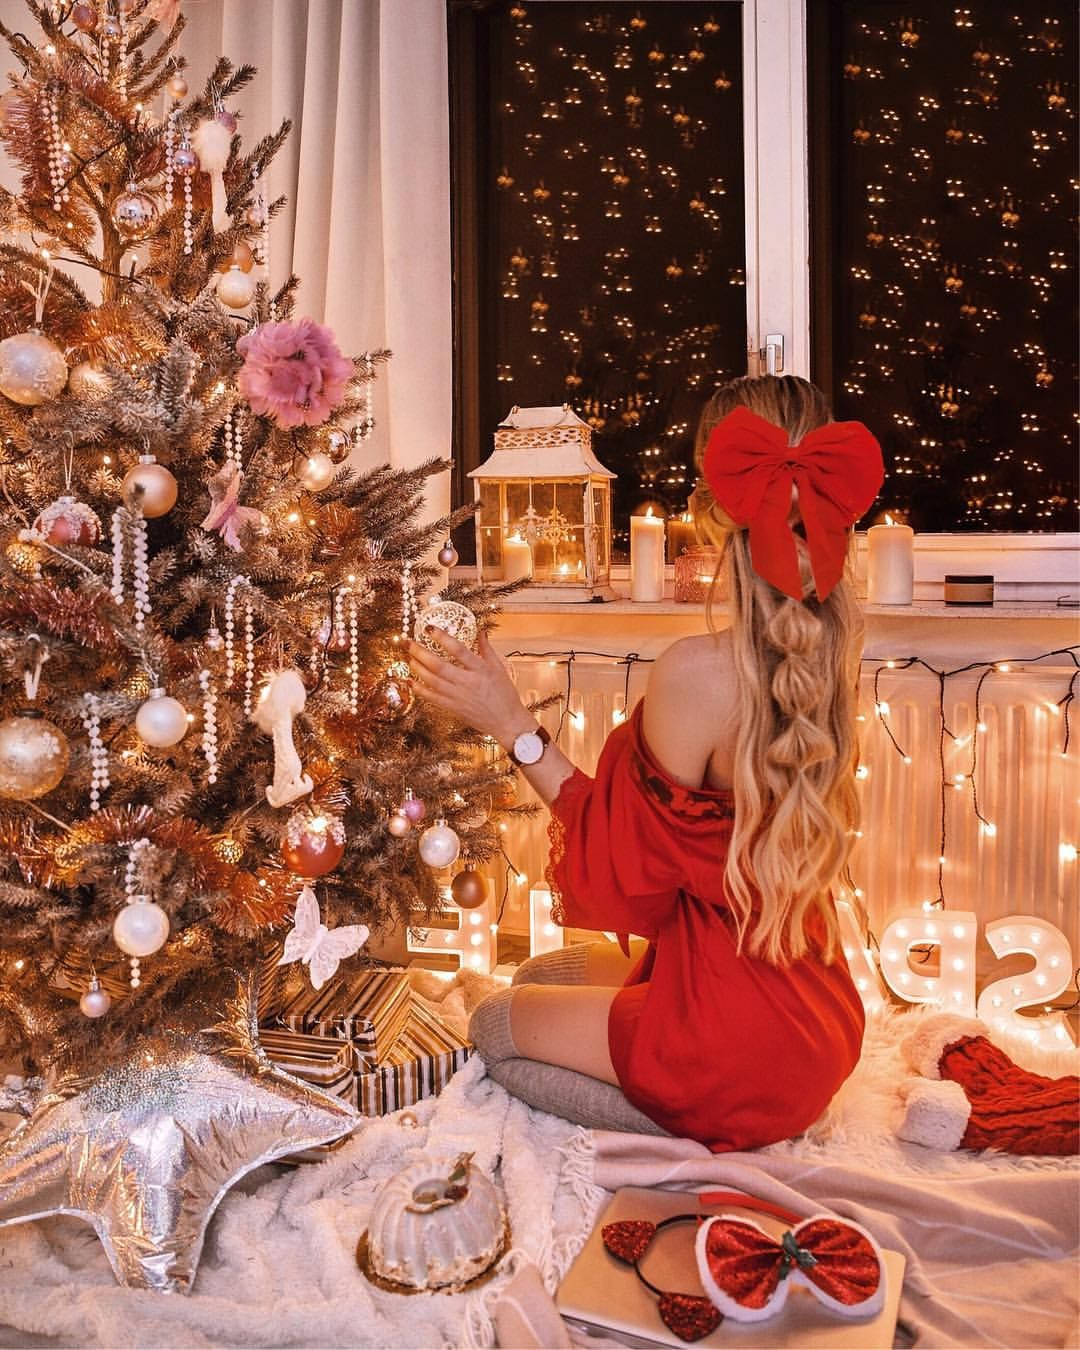 776 Likes 40 Comments Flatlays Fashion Interior Thestylevisitor On Instag Christmas Photoshoot Gold Christmas Tree Decorations Gold Christmas Tree